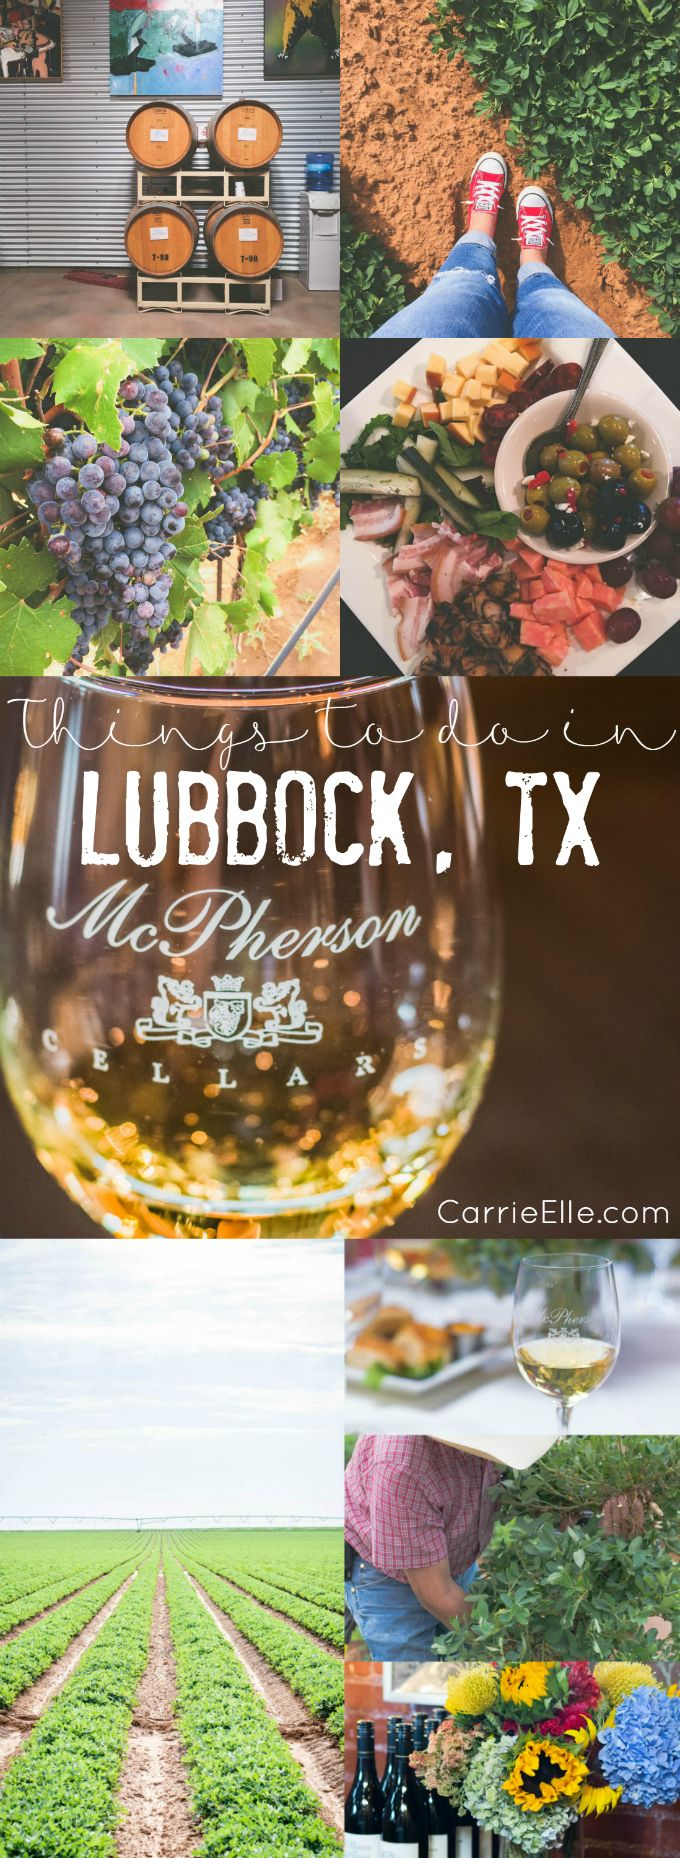 Here's a list of five things to do in Lubbock, Texas - from fine dining to wine tasting to exploring local art, you'll find Lubbock is full of fun things!